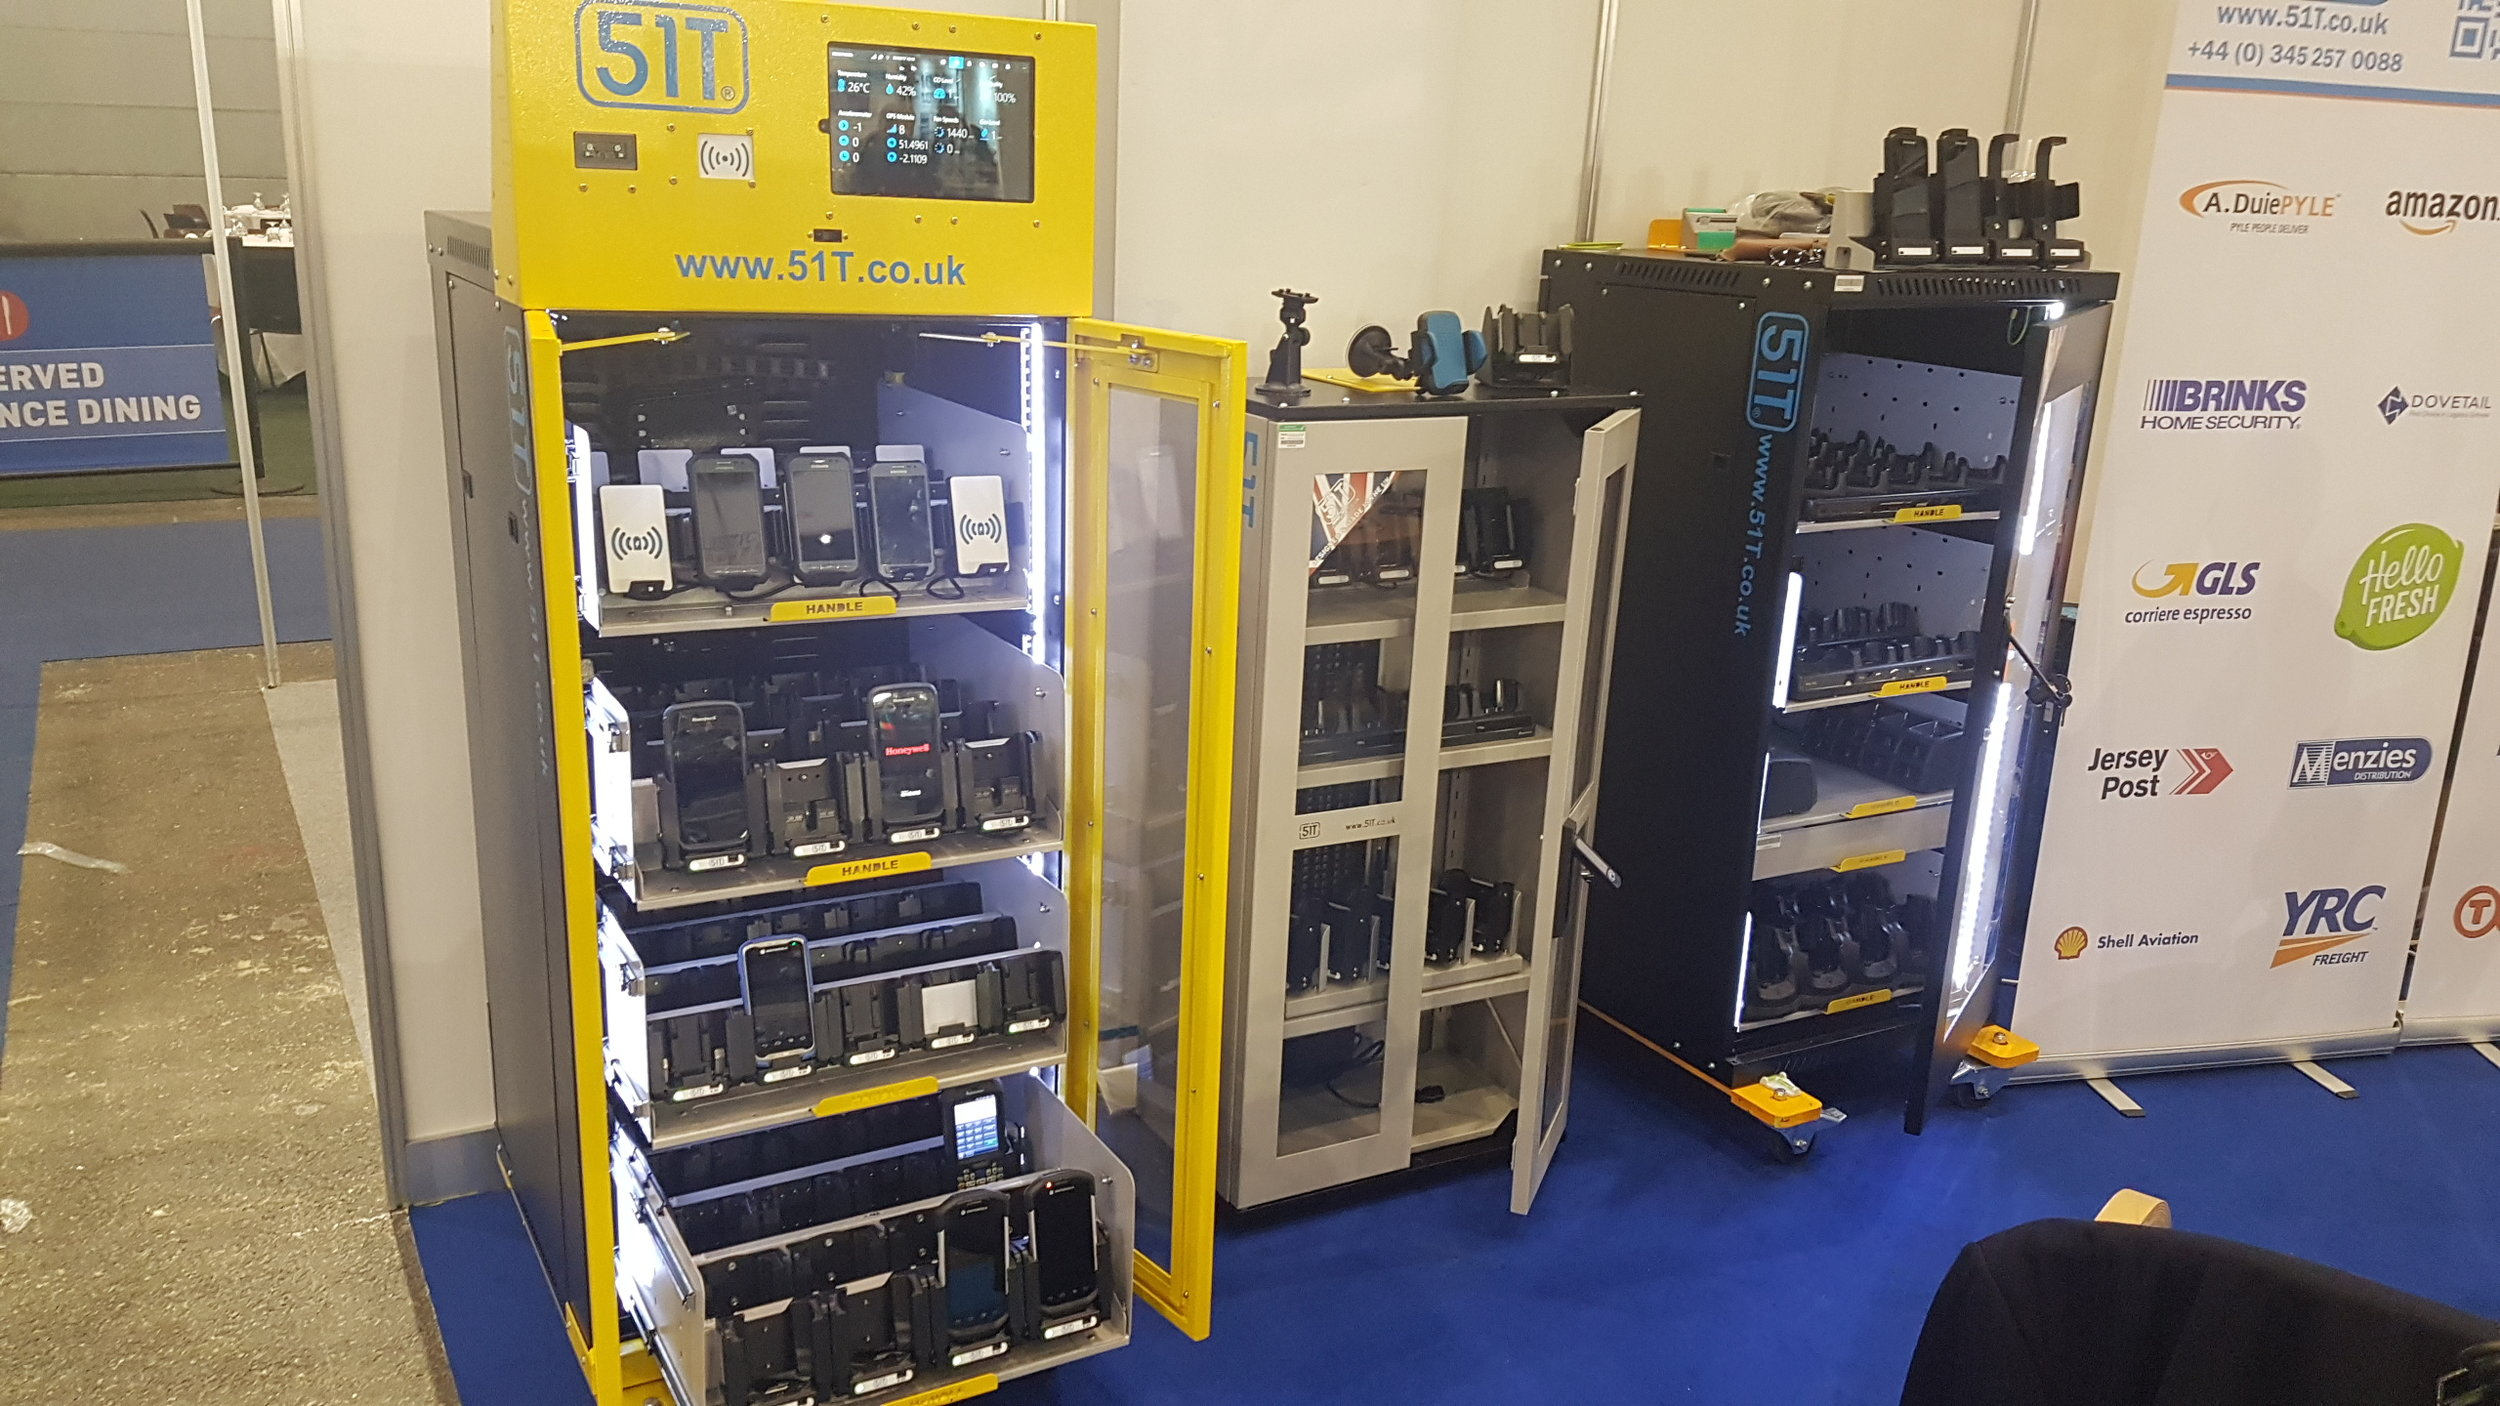 Hand-held data terminal charging stations from 51T